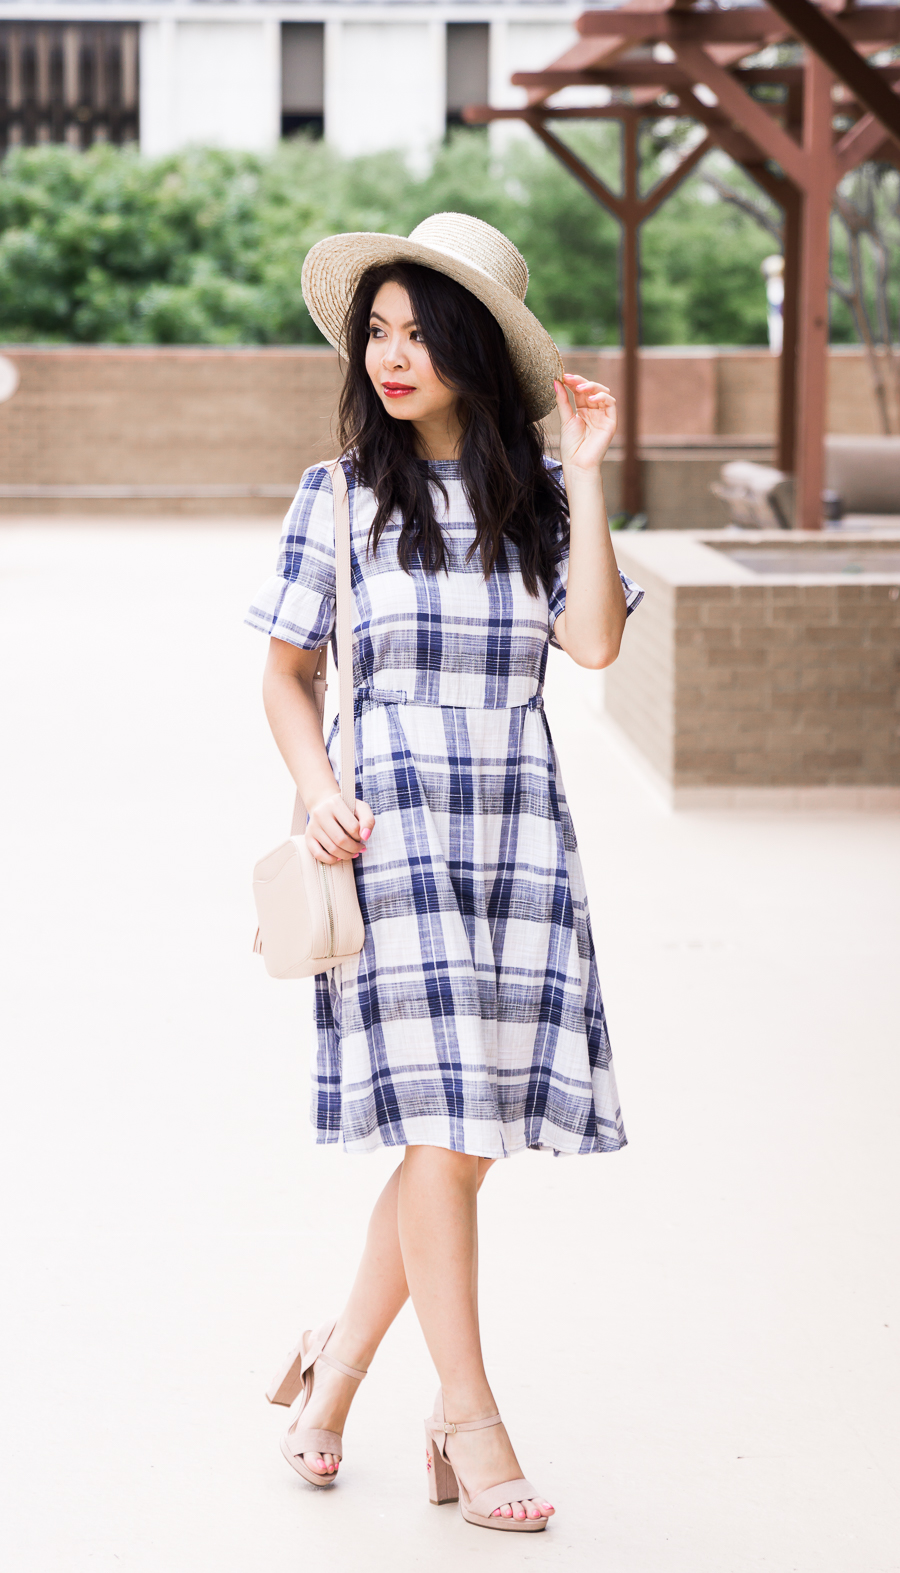 Marks & Spencer dresses, plaid dress